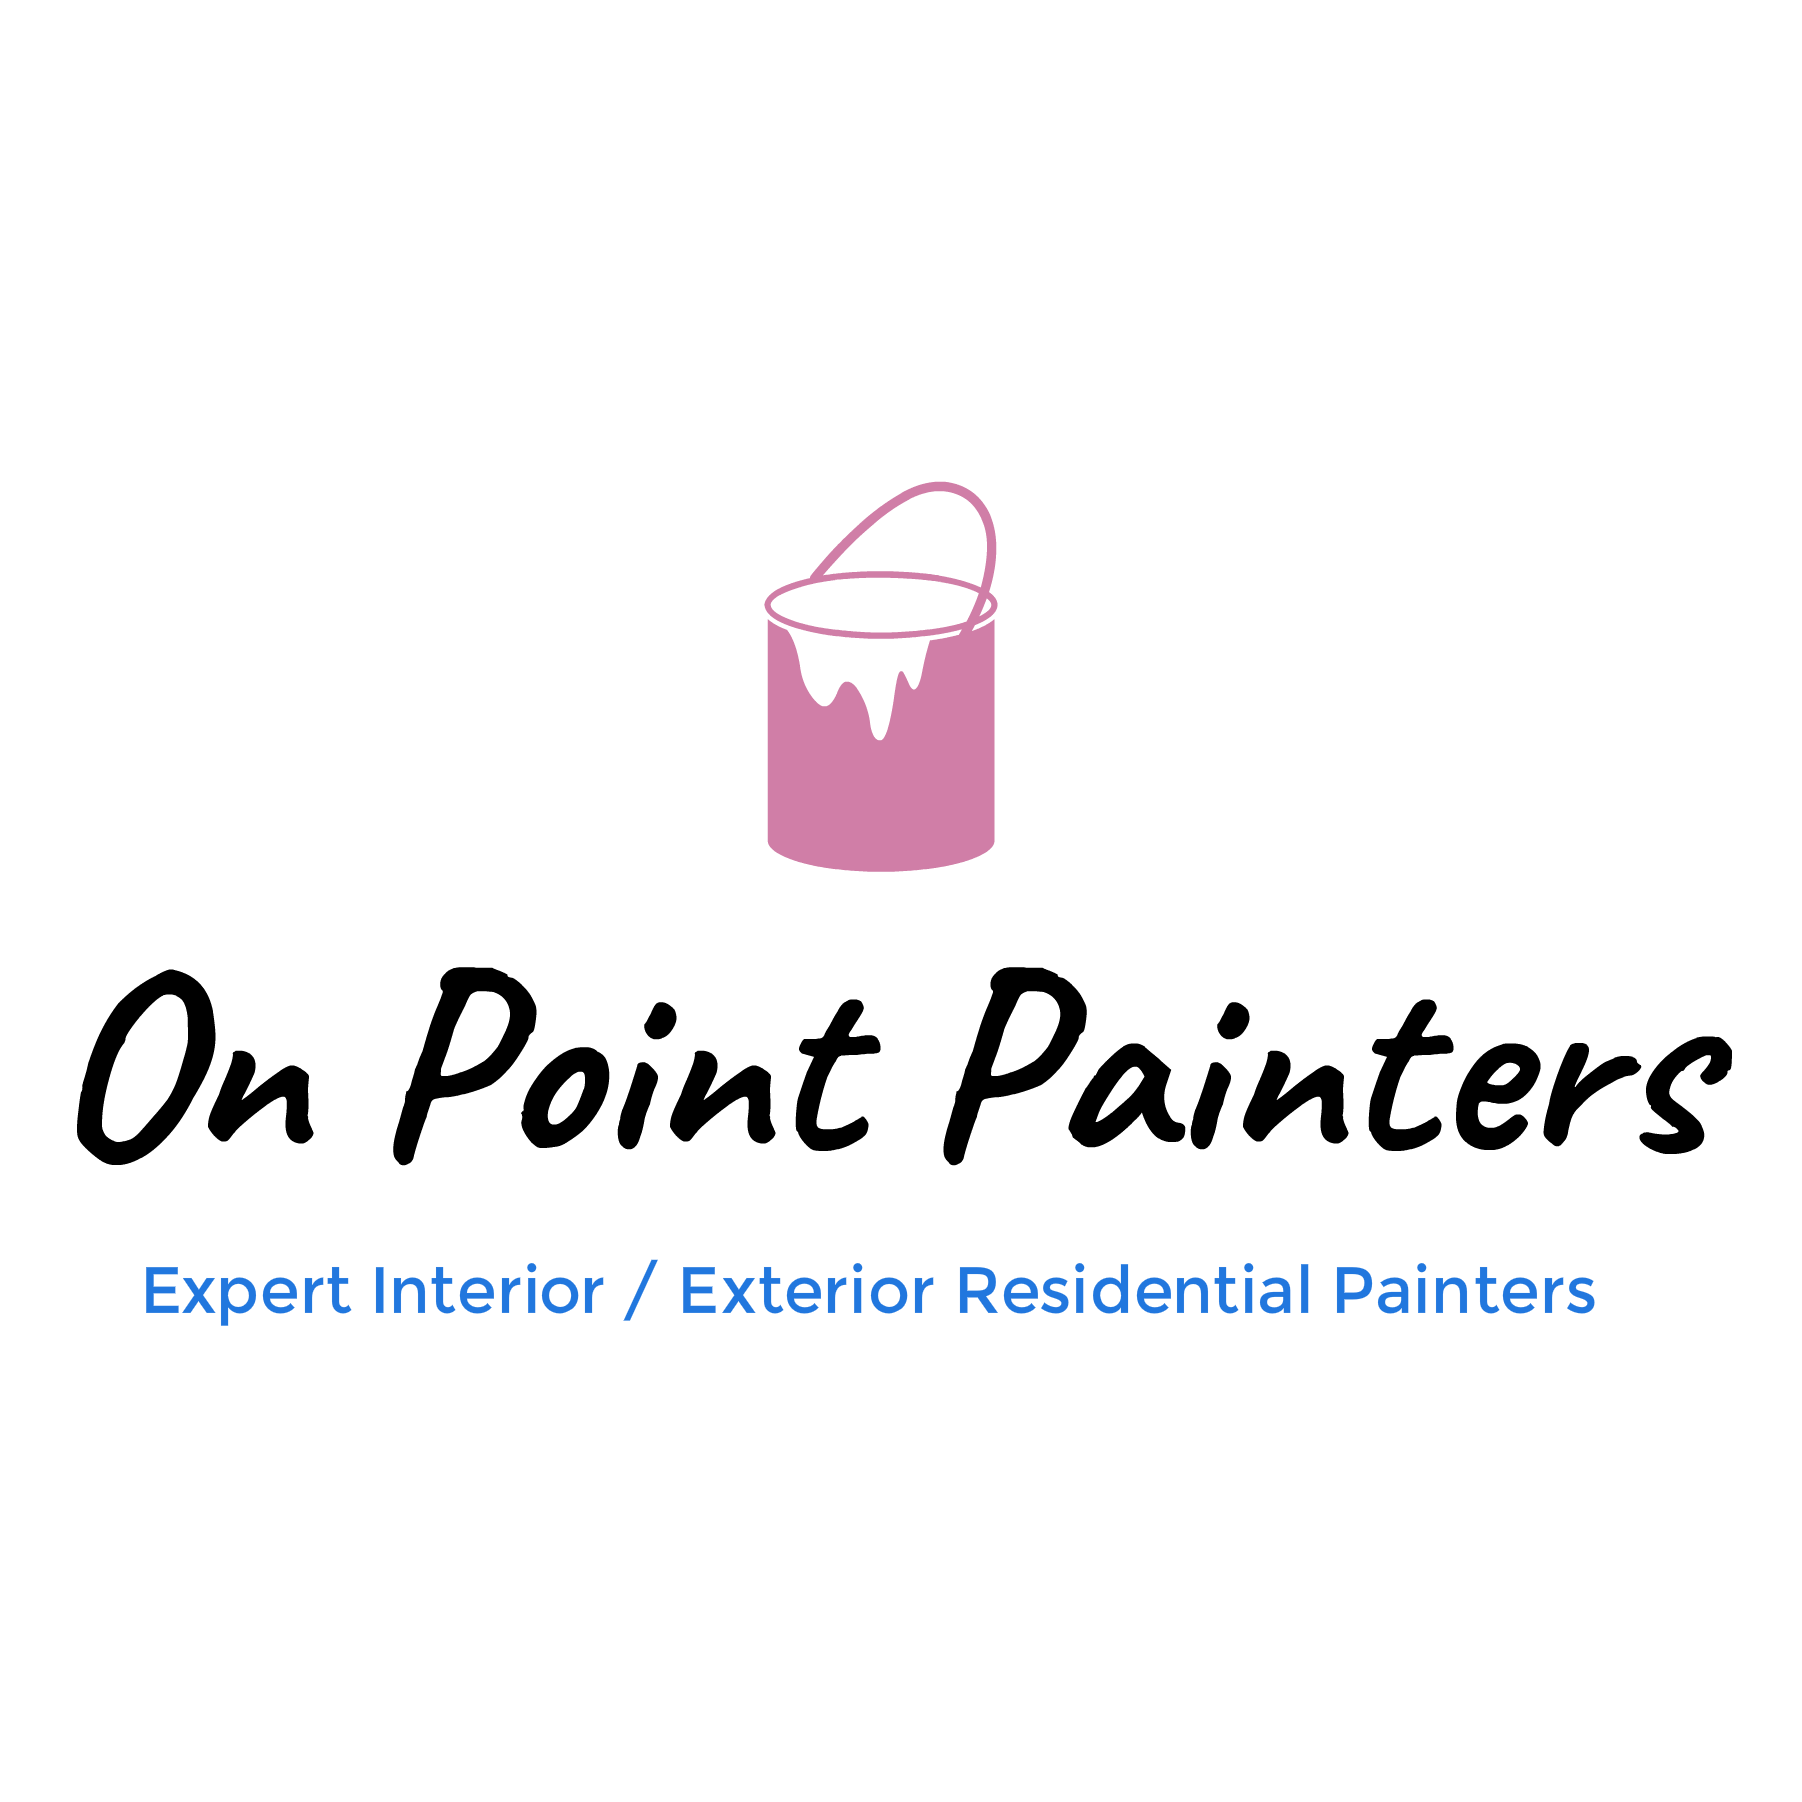 On Point Painters Official Logo